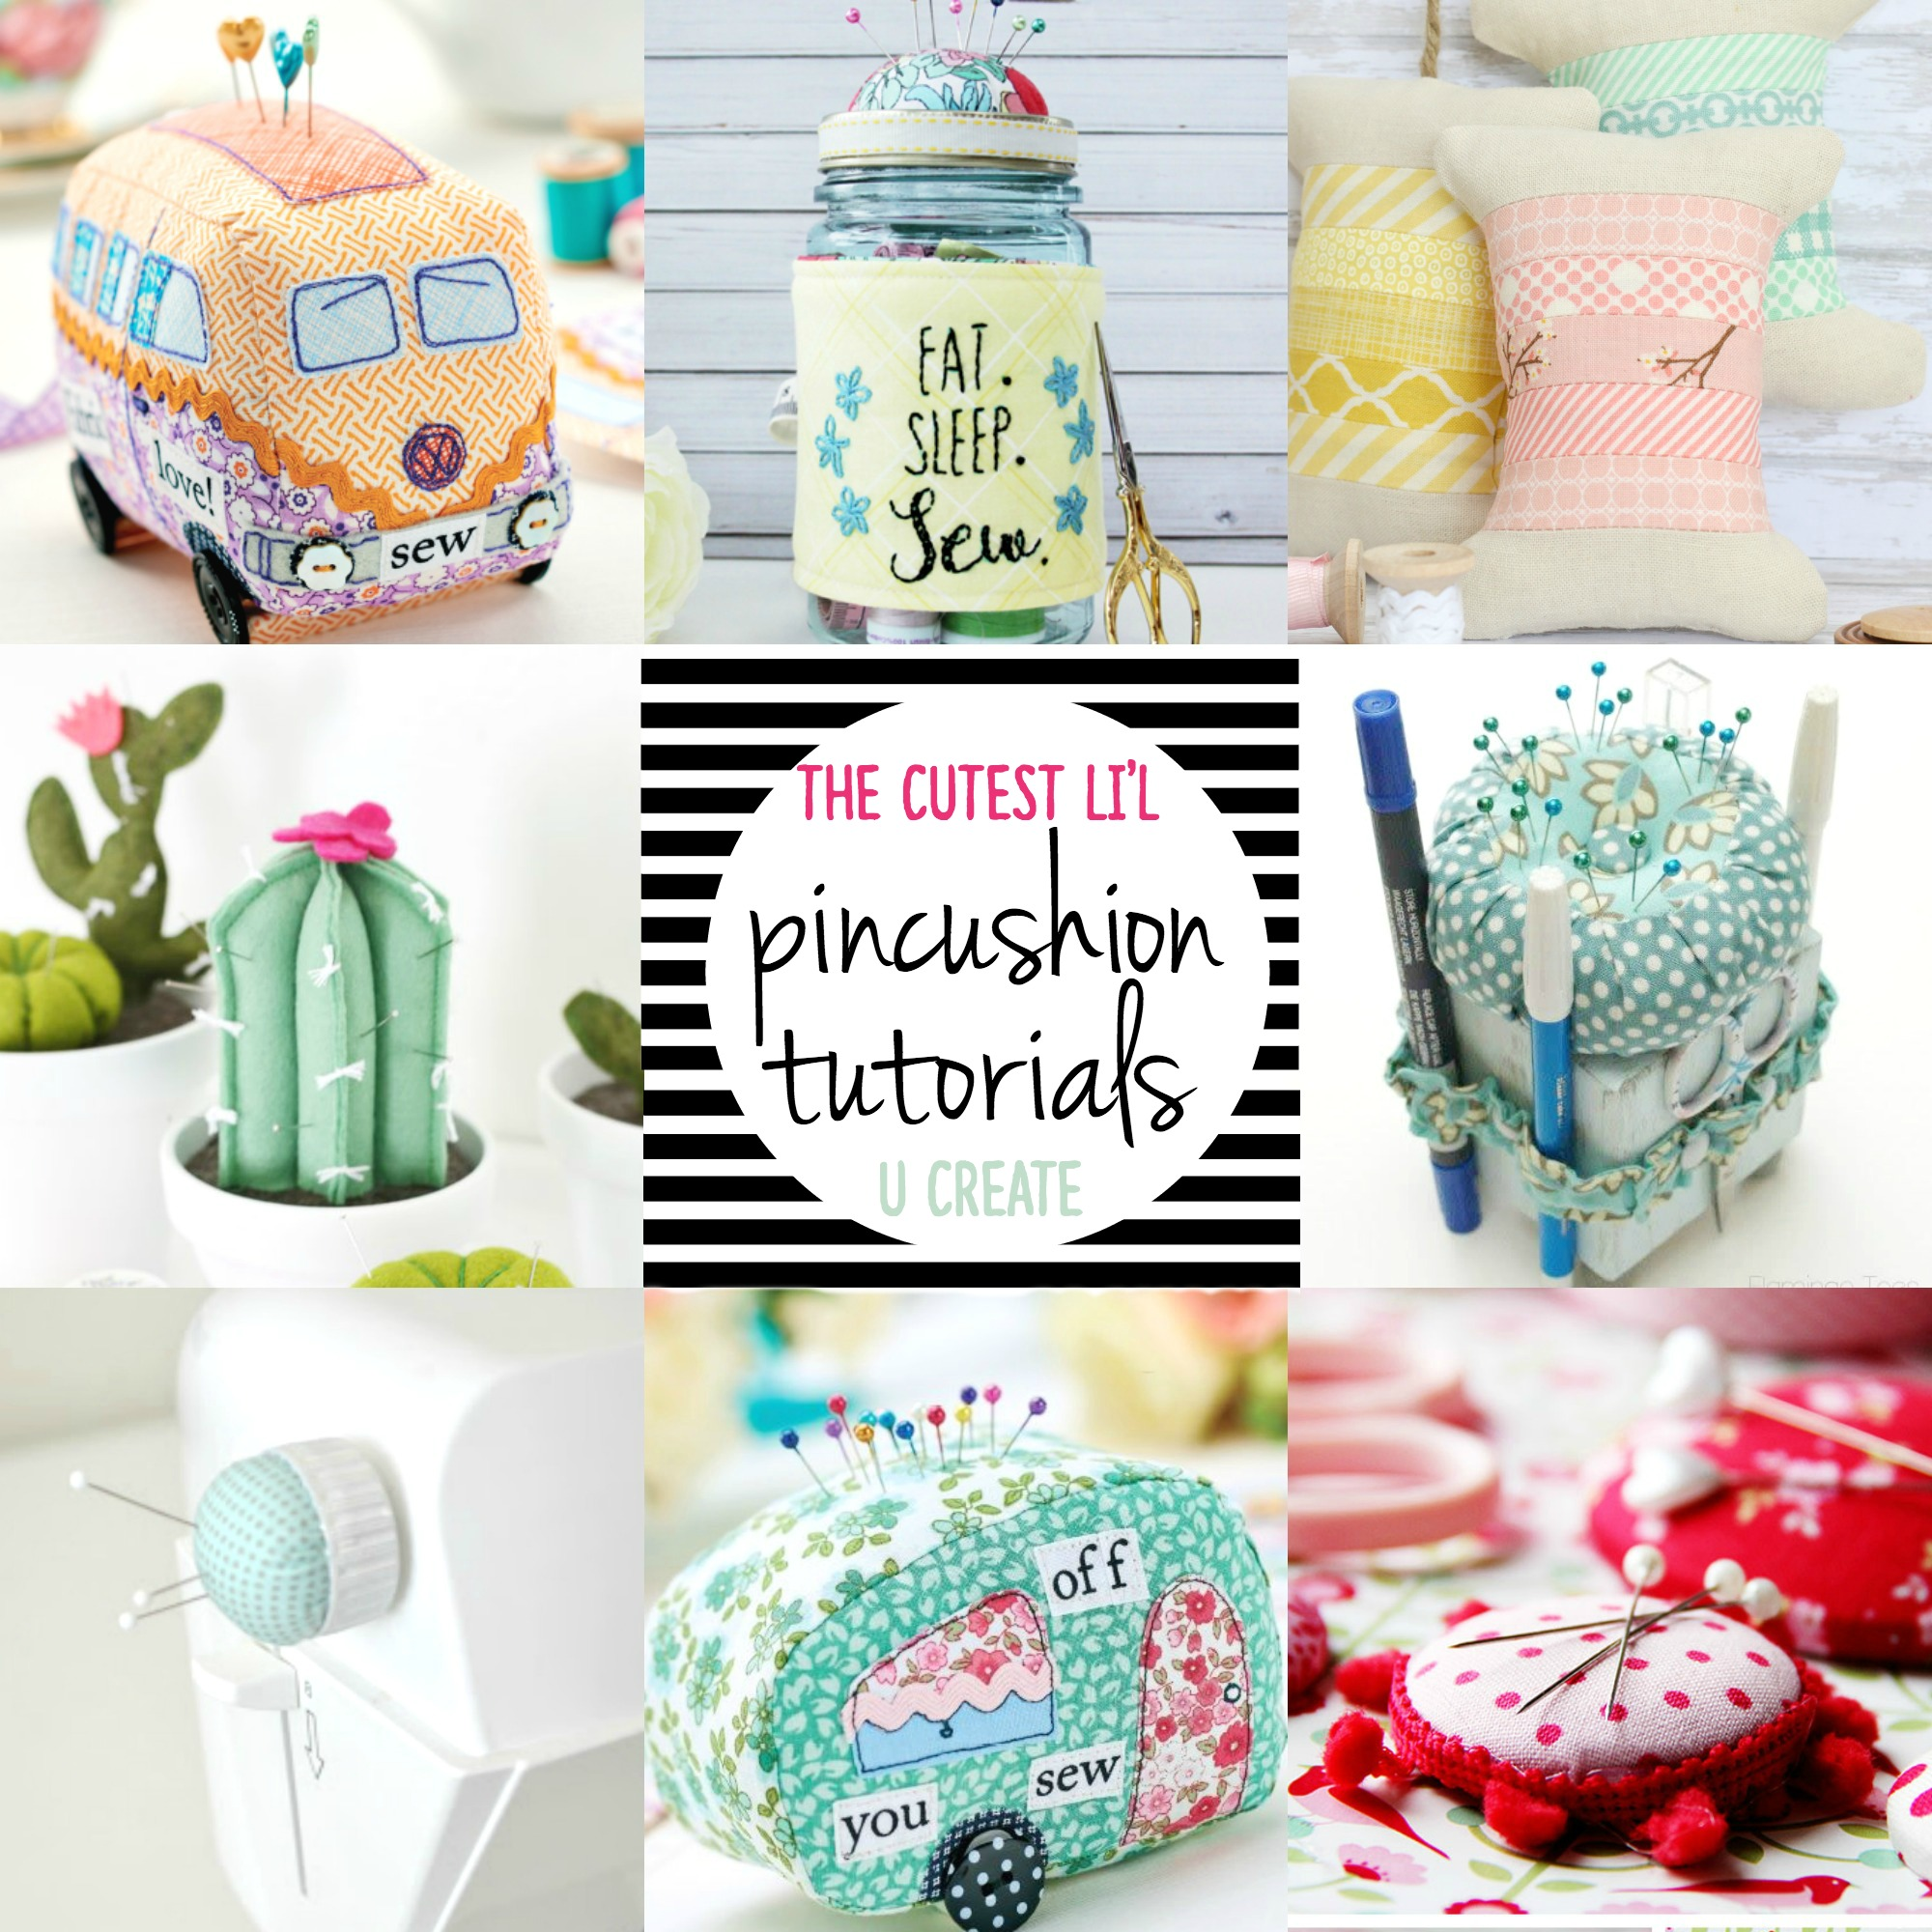 Tons of Pincushion Tutorials